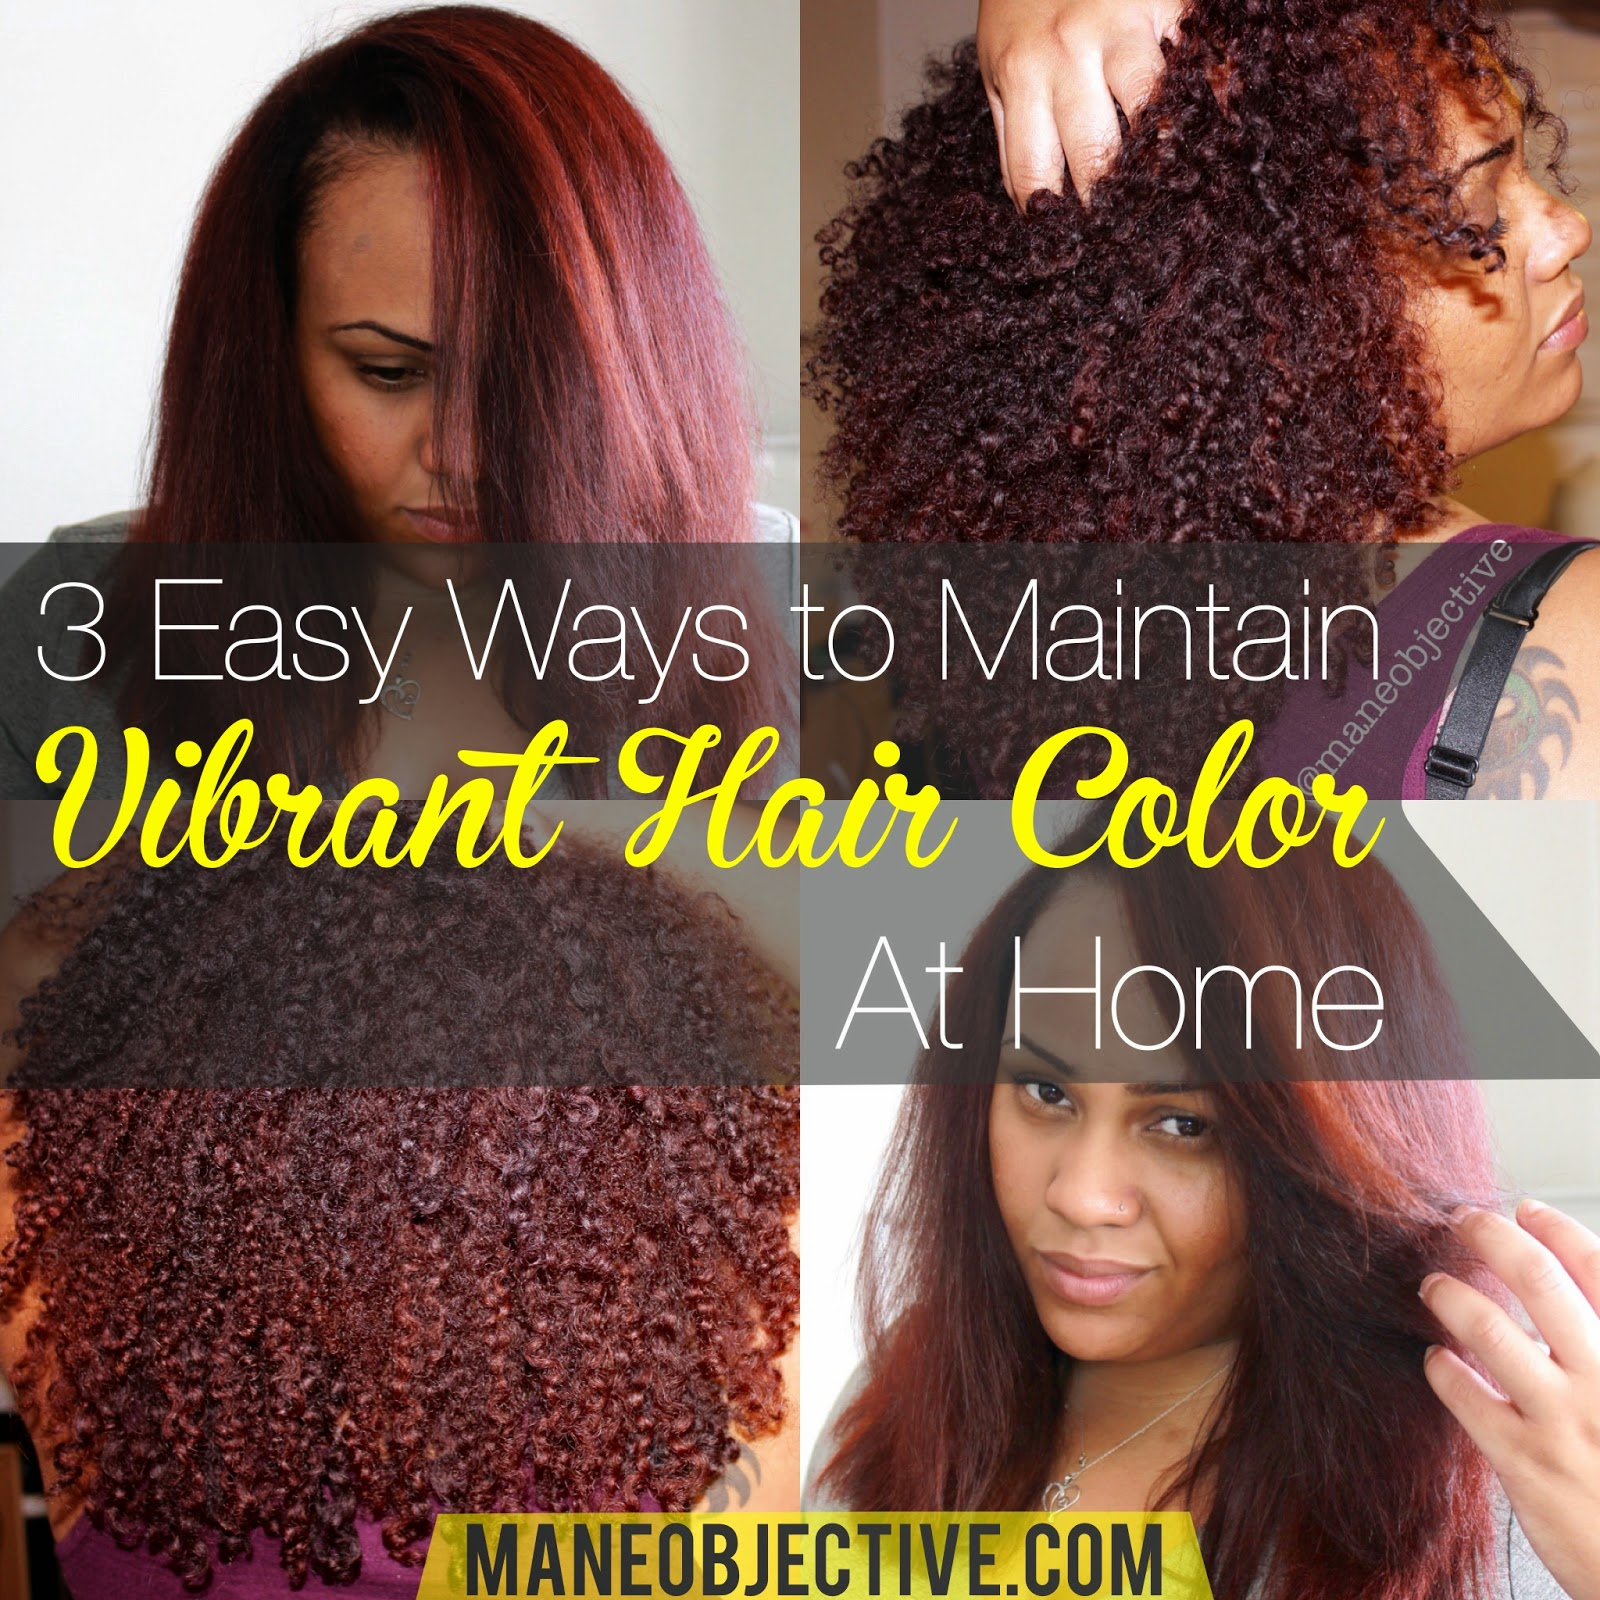 the mane objective 3 easy ways to maintain vibrant hair color at home